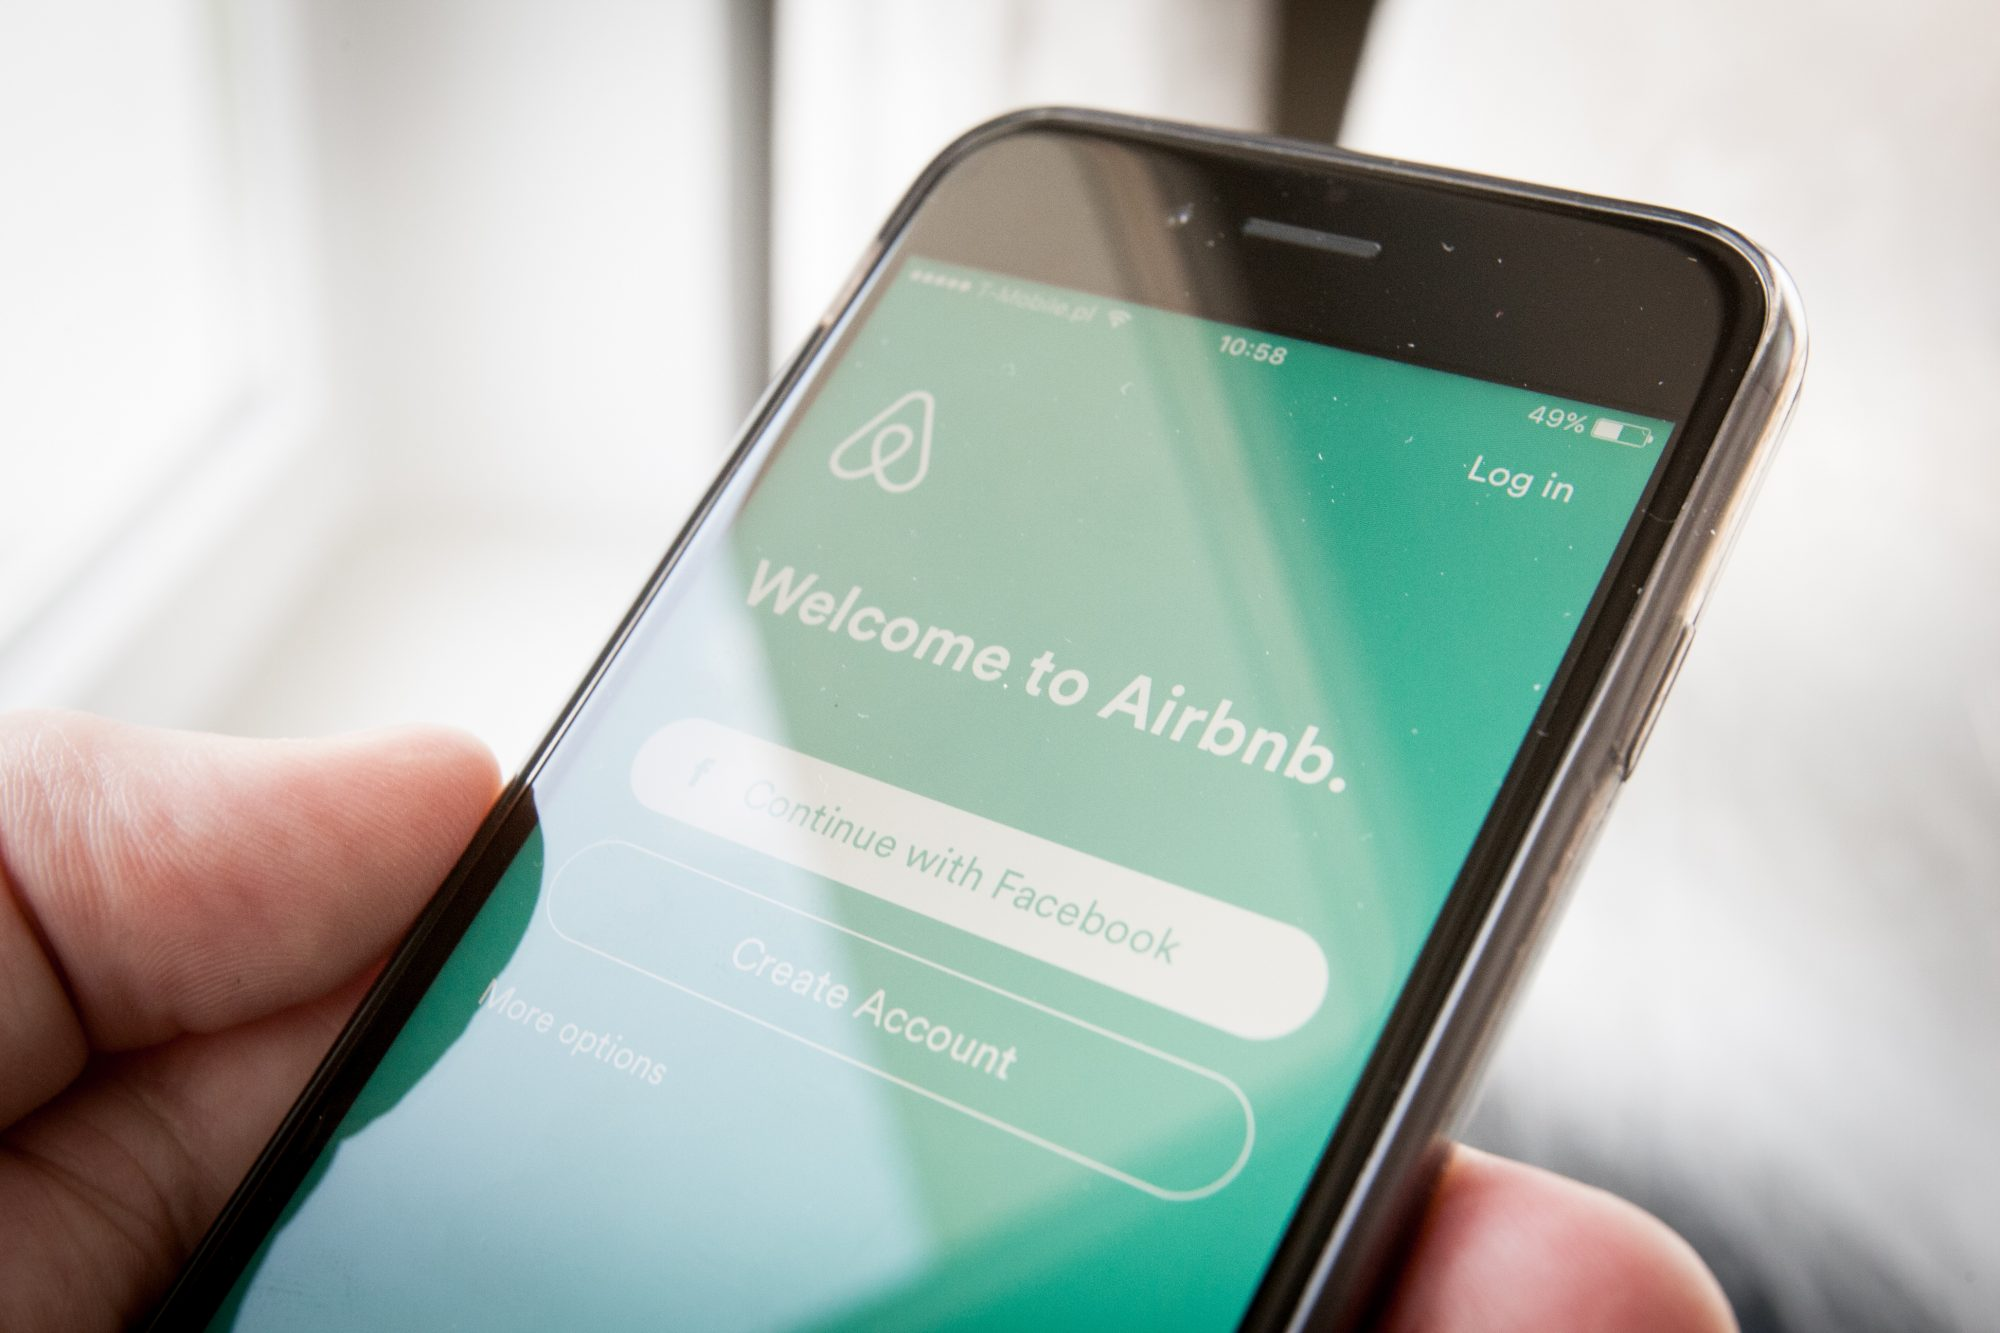 Airbnb App on Smart Phone